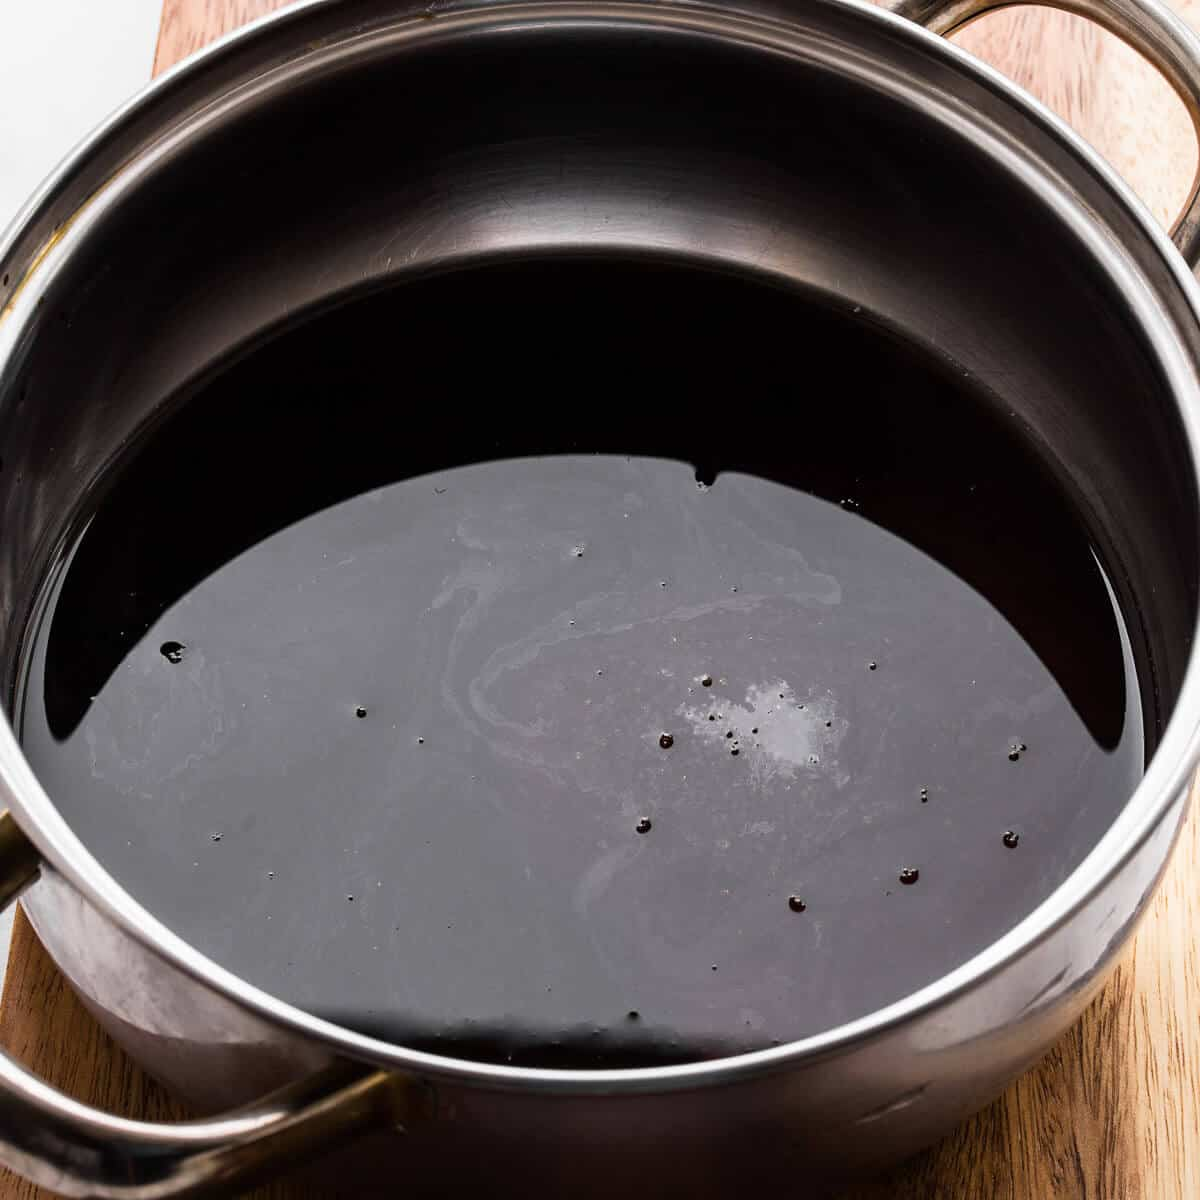 soy sauce, water, sugar and molasses in a sauce pan